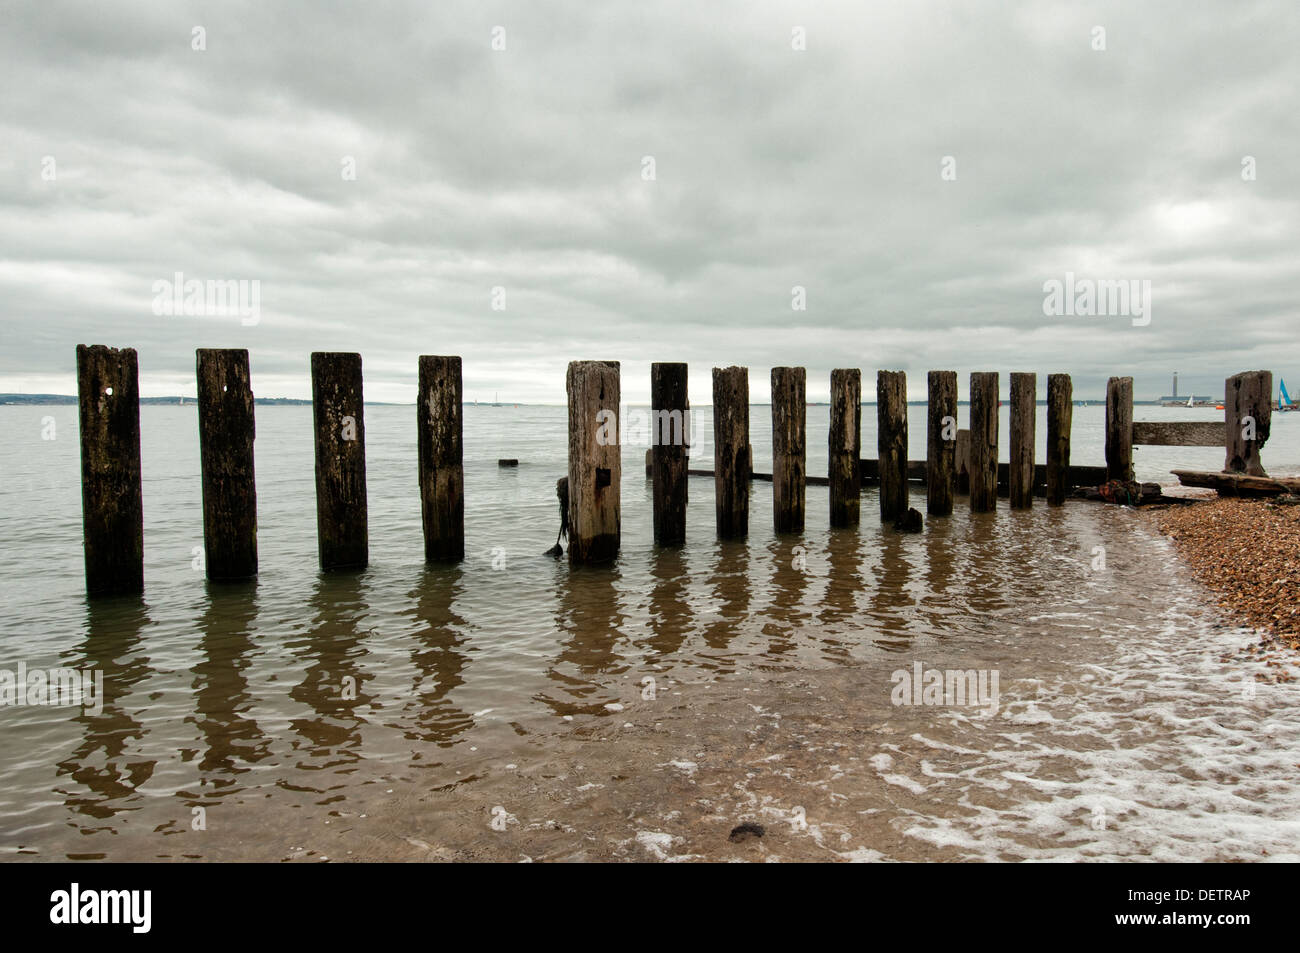 old wooden posts on the beach, sea defence against coastal erosion - Stock Image